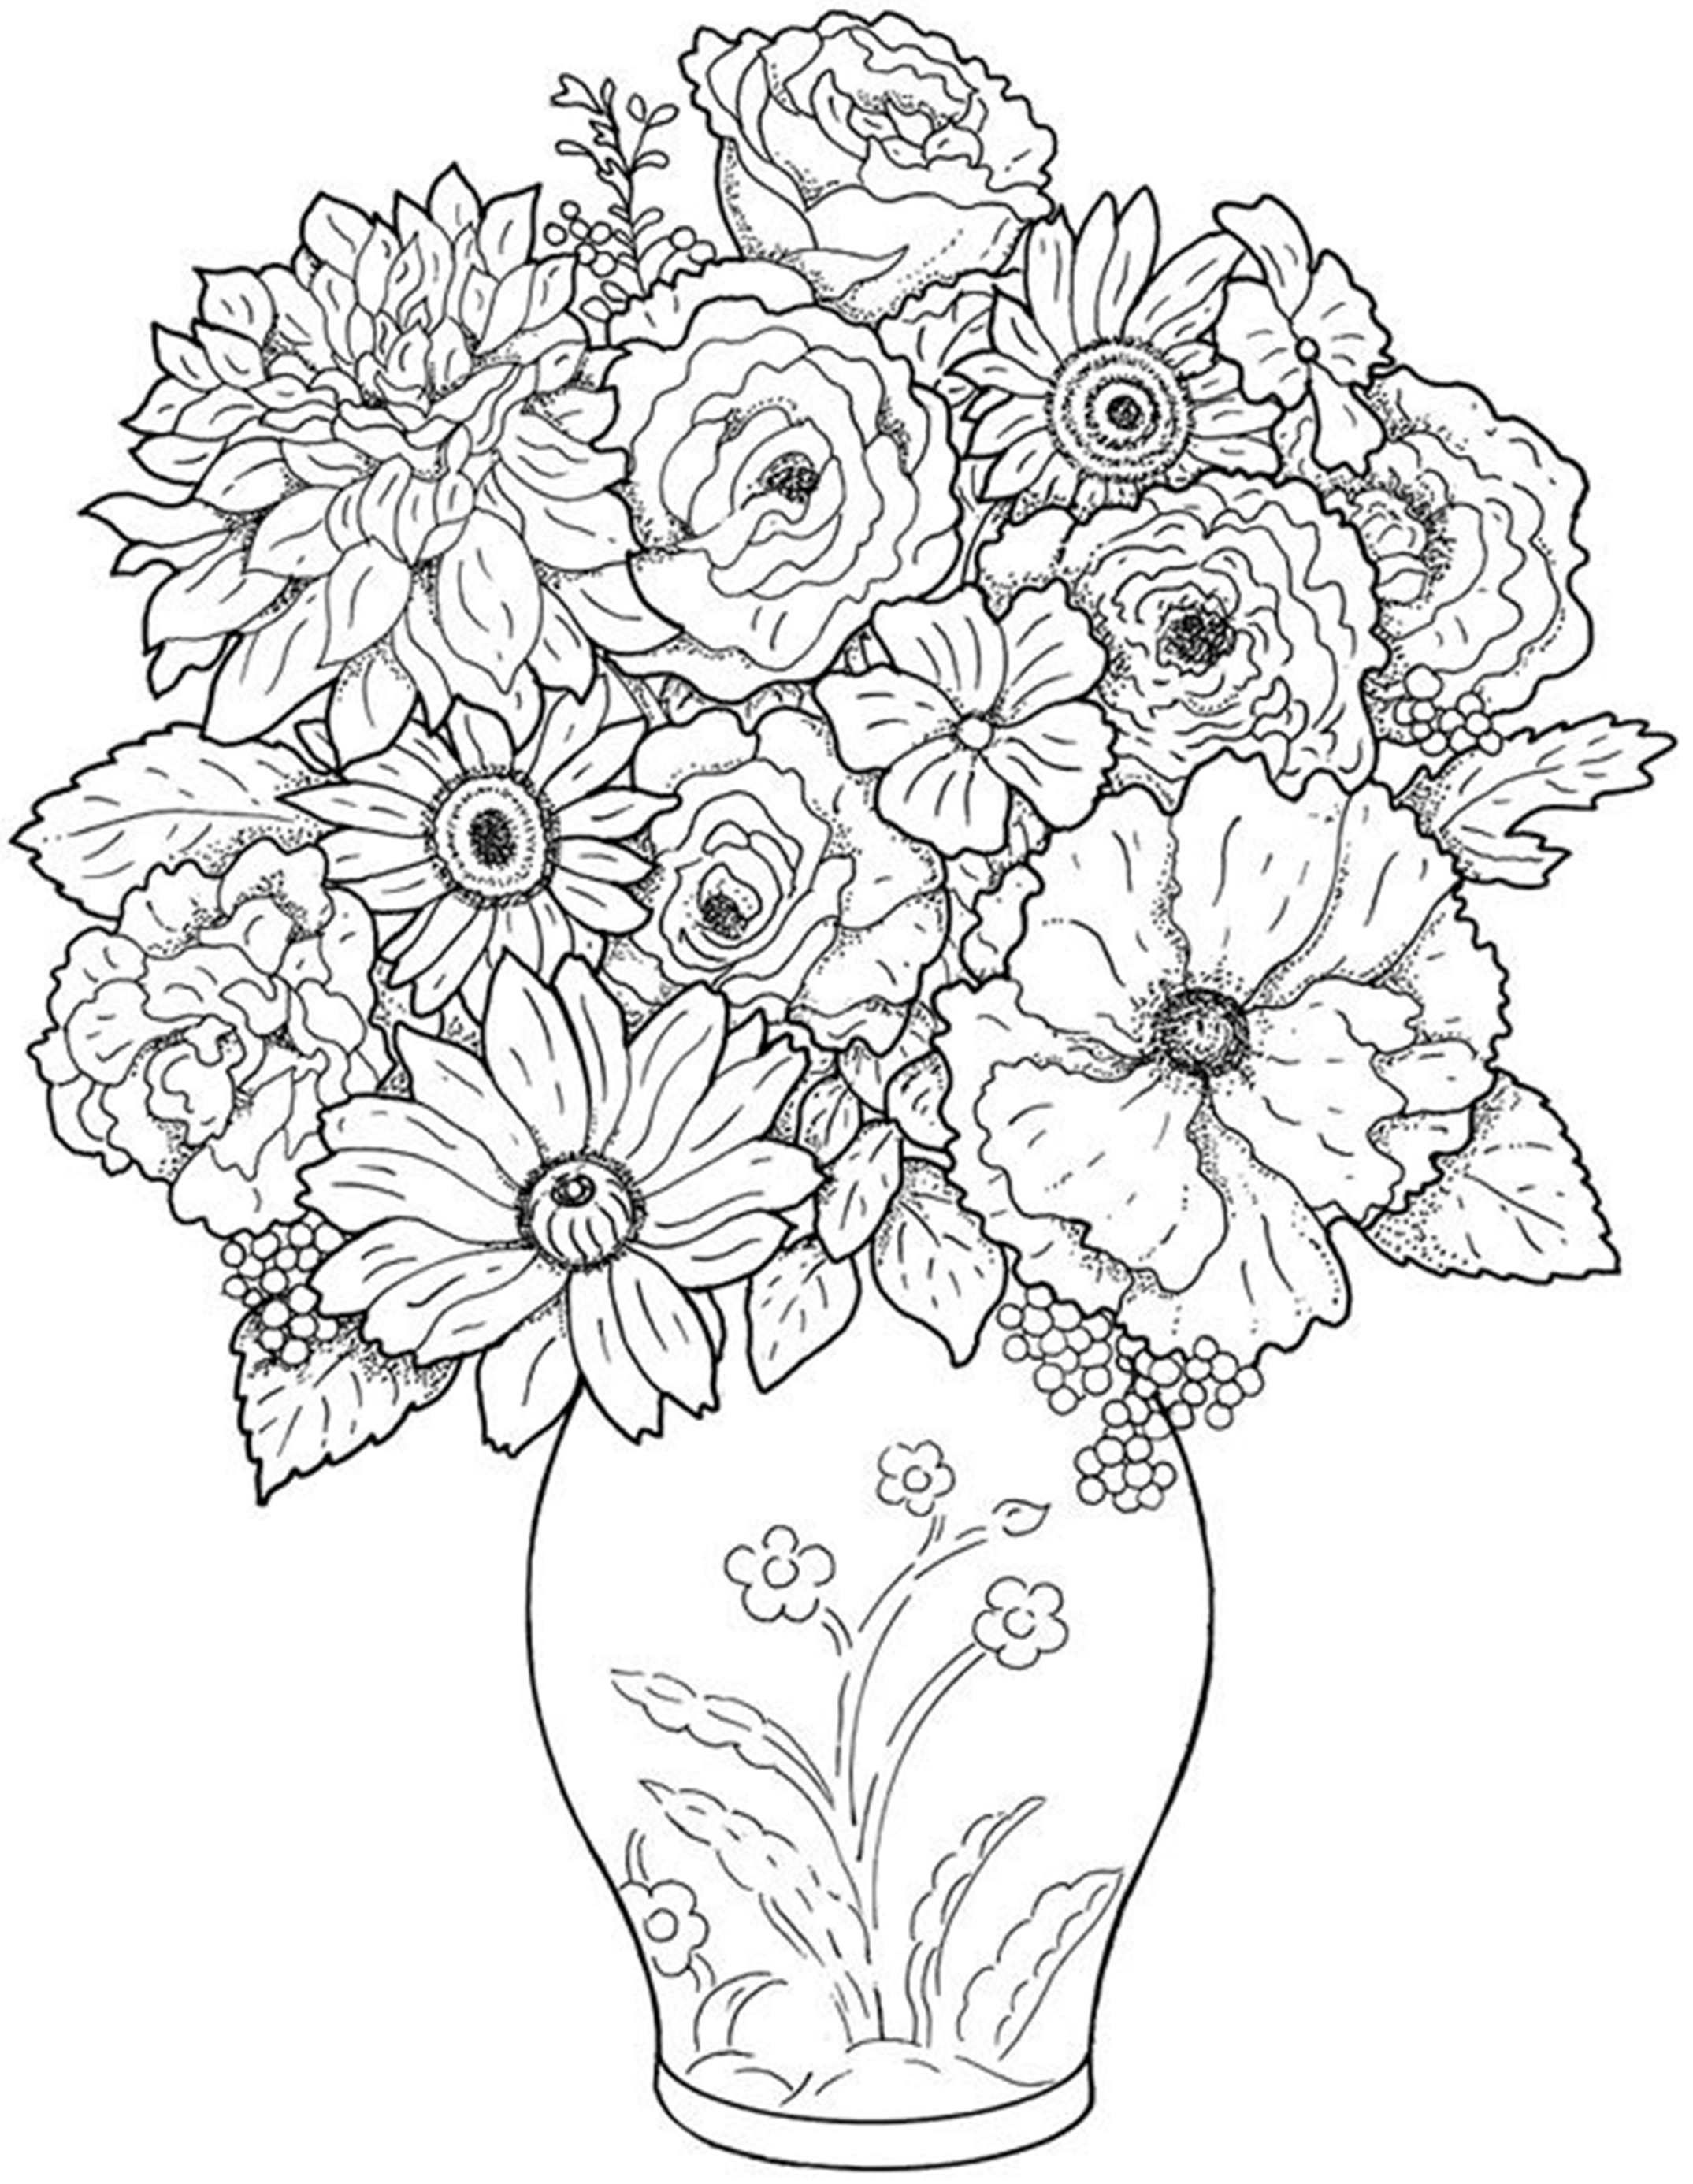 Flower Colouring Pages : Free printable flower coloring pages for kids best